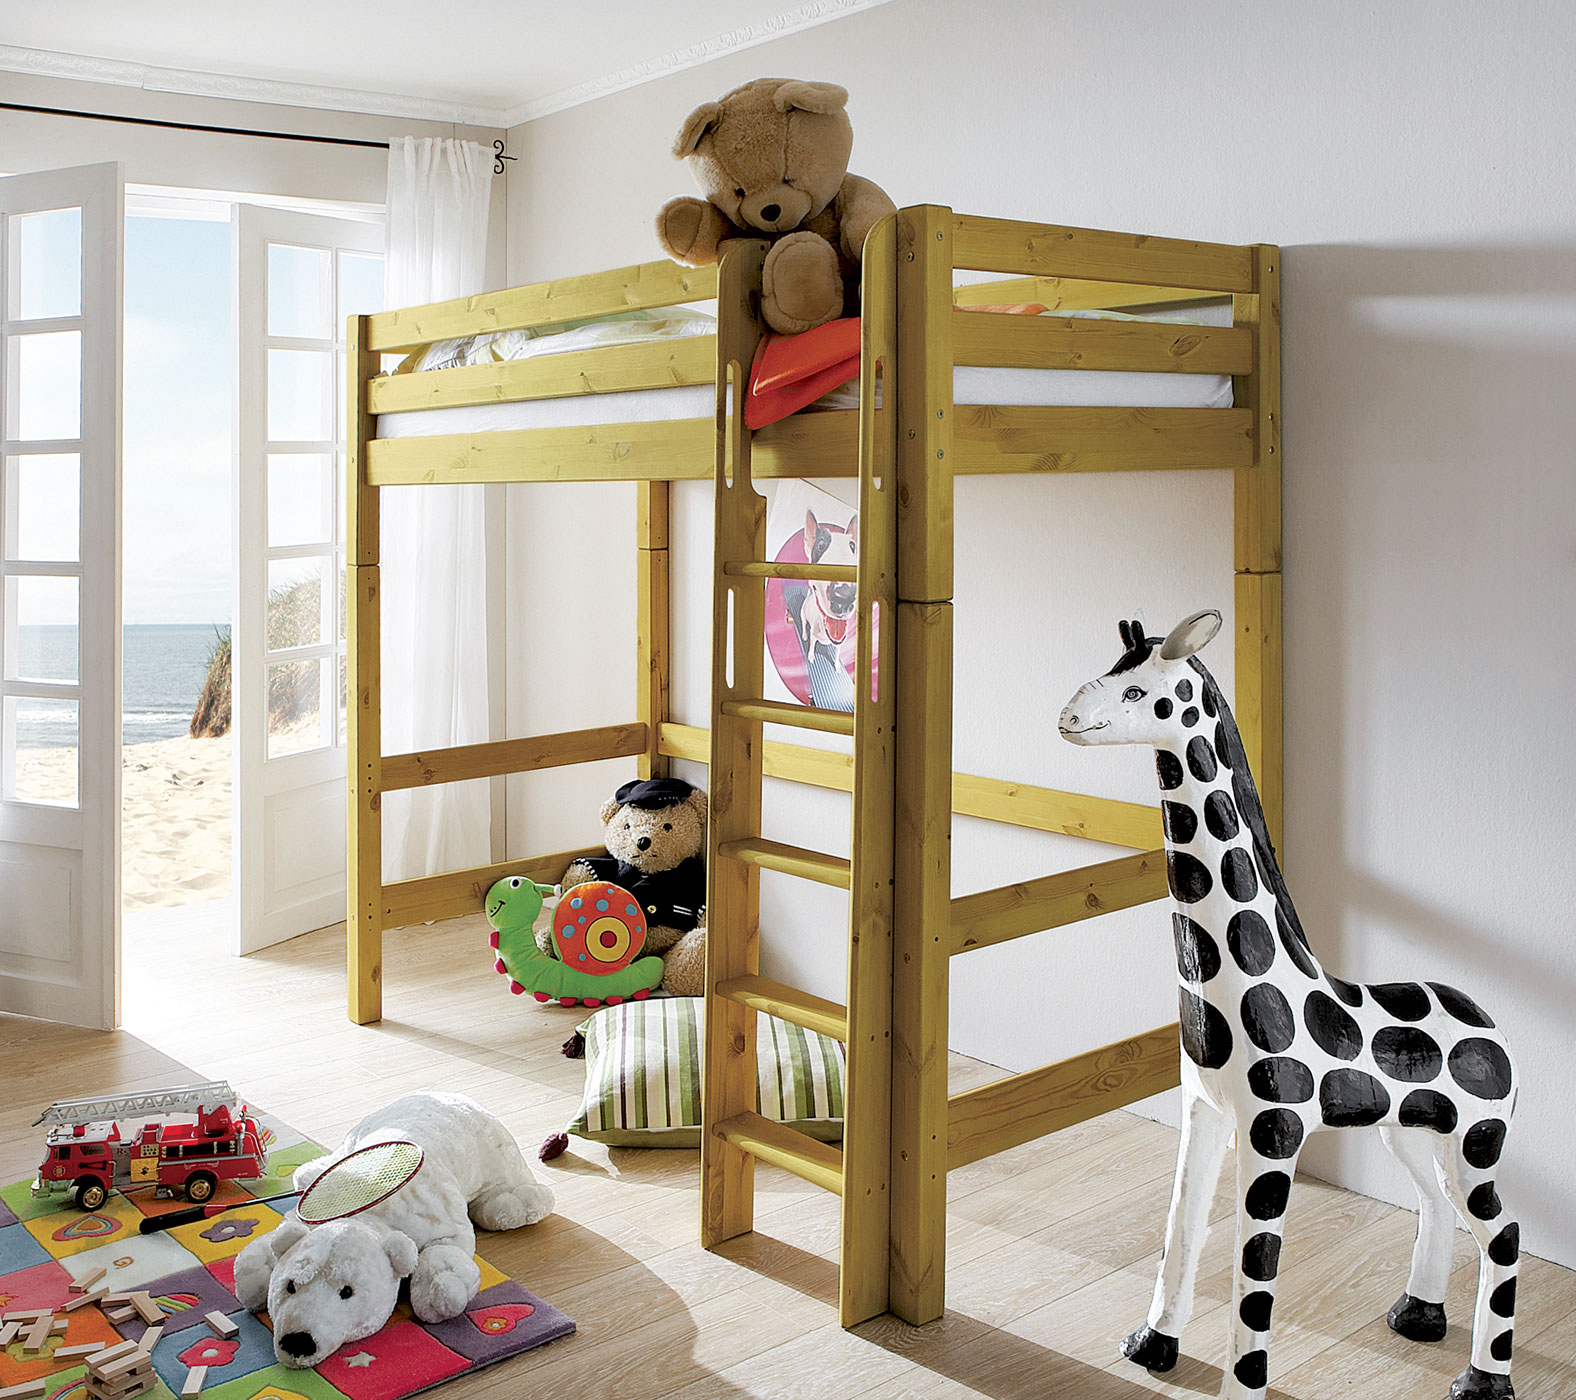 massives umbaubares hochbett mit leiter f r kinder kids paradise. Black Bedroom Furniture Sets. Home Design Ideas